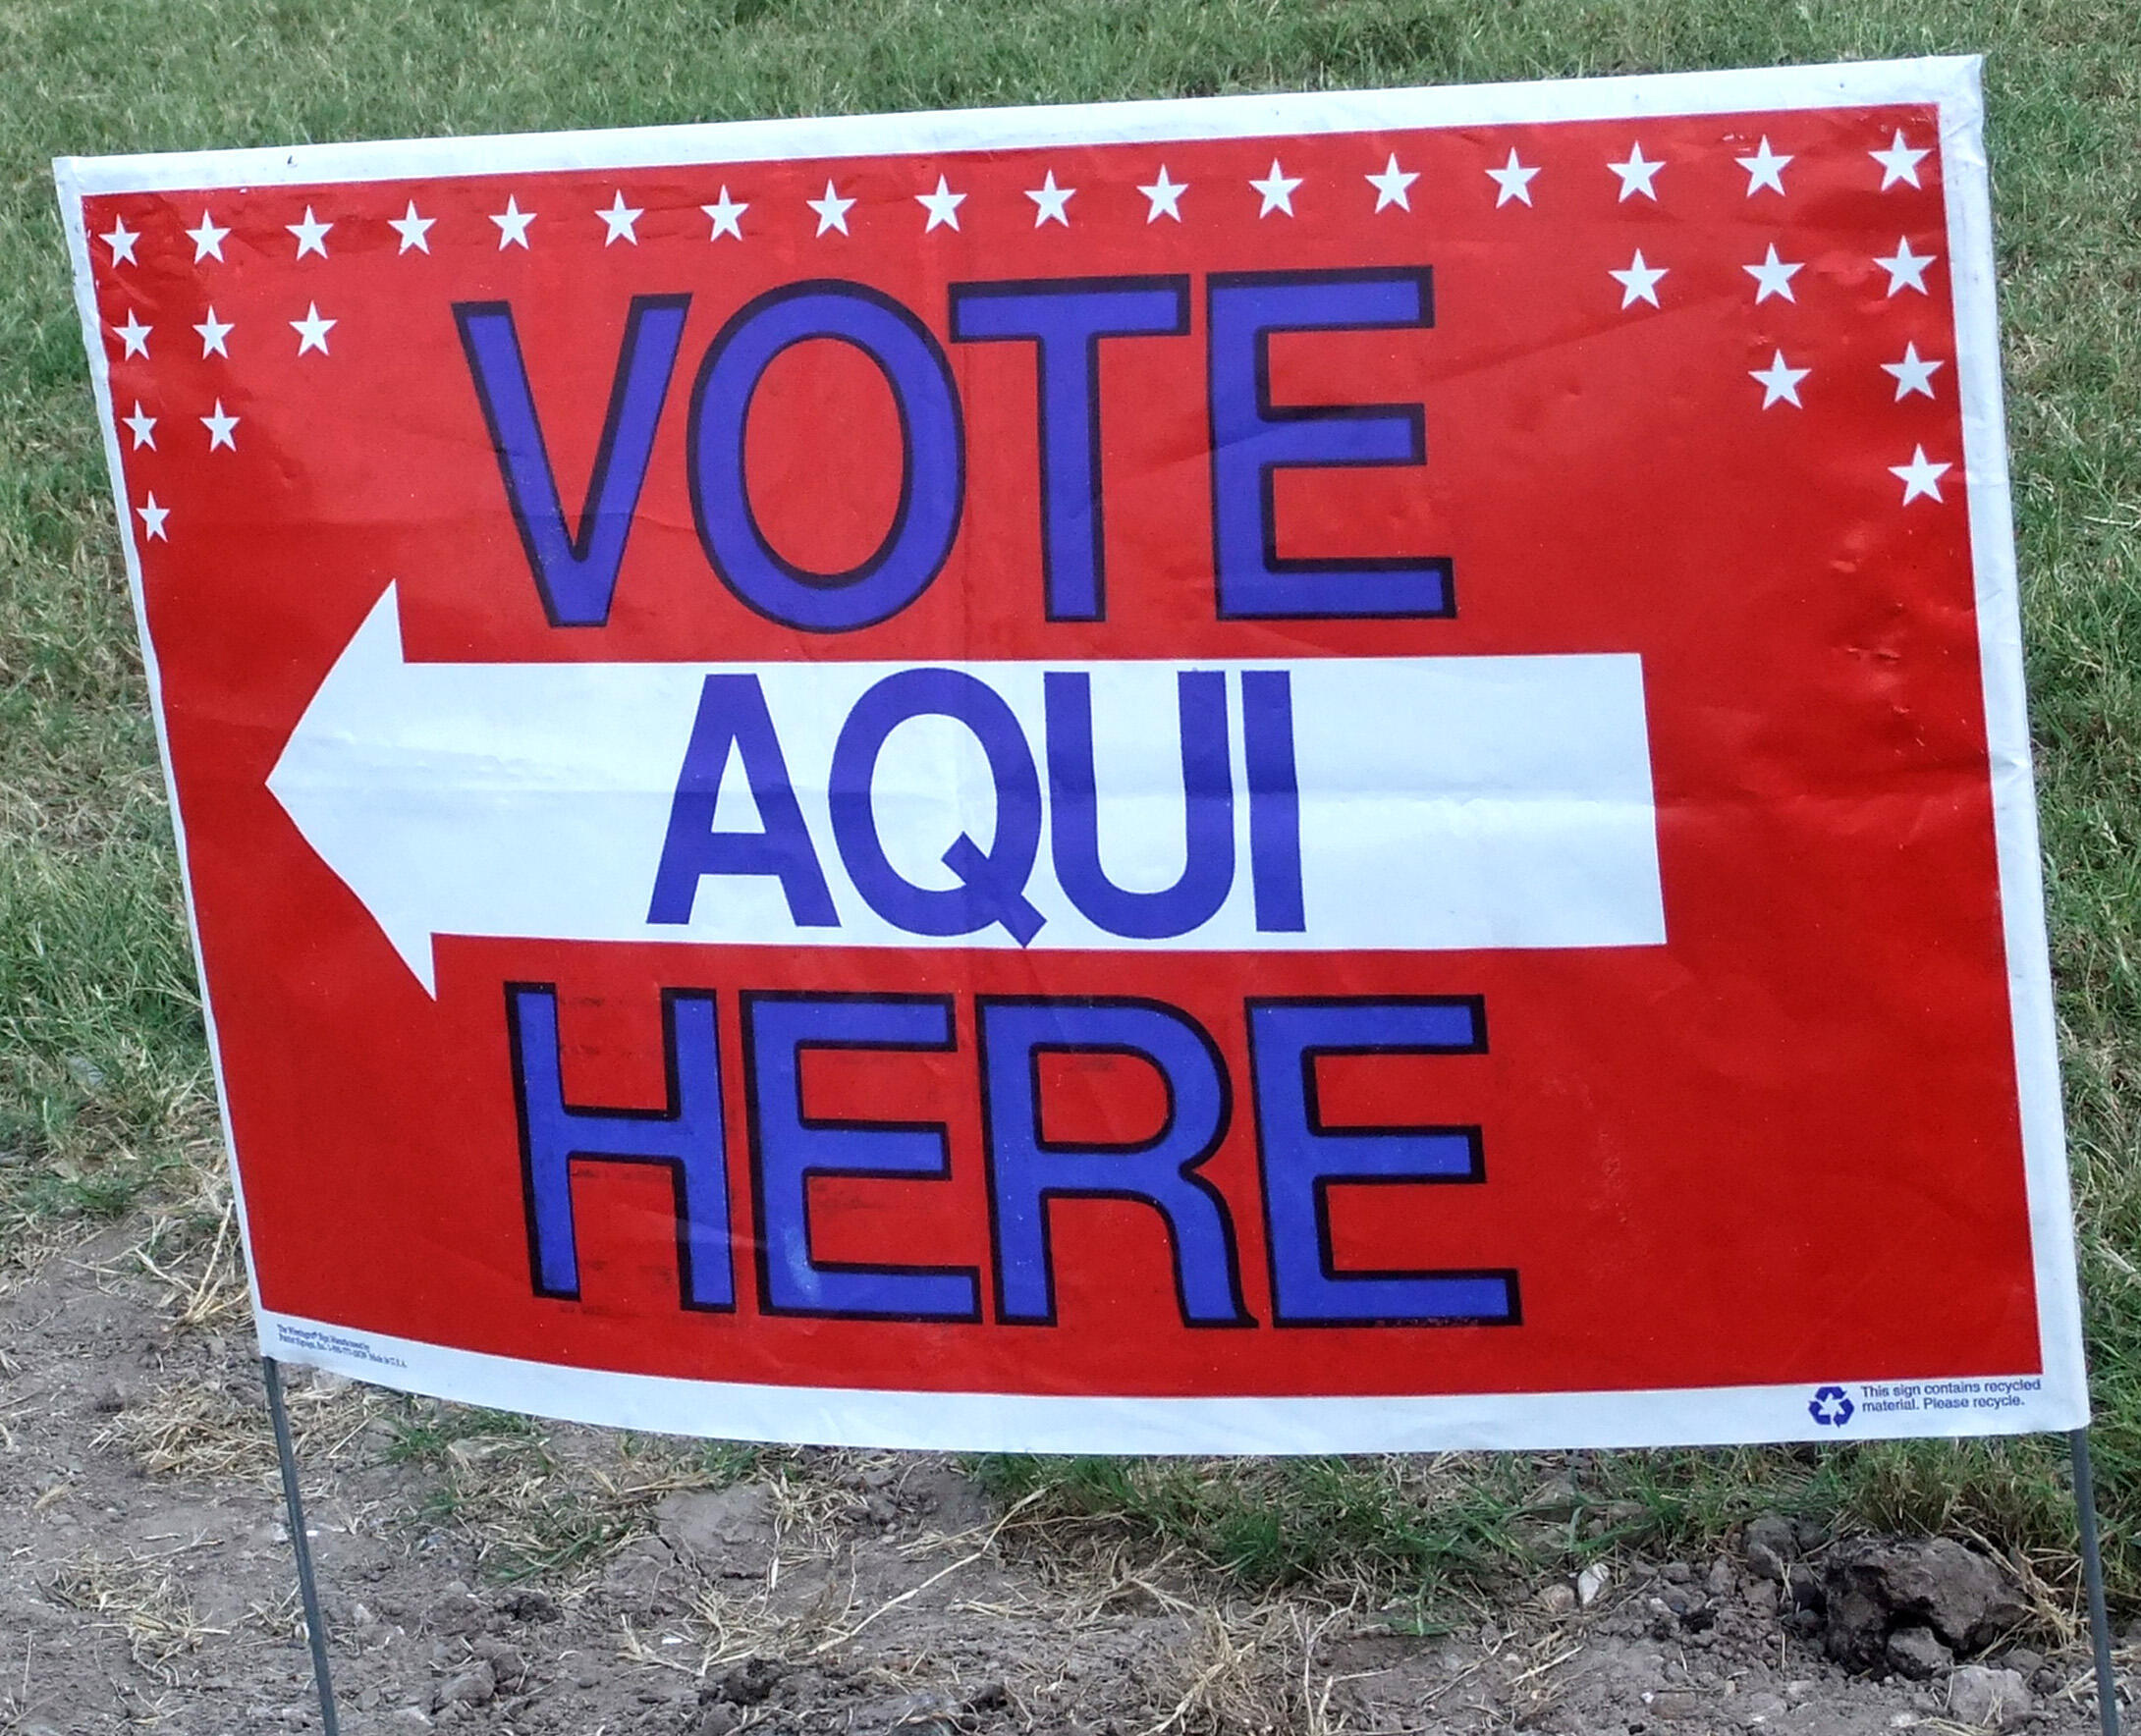 Will Obama's changes to US immigration policy be enough to take the Latino vote?